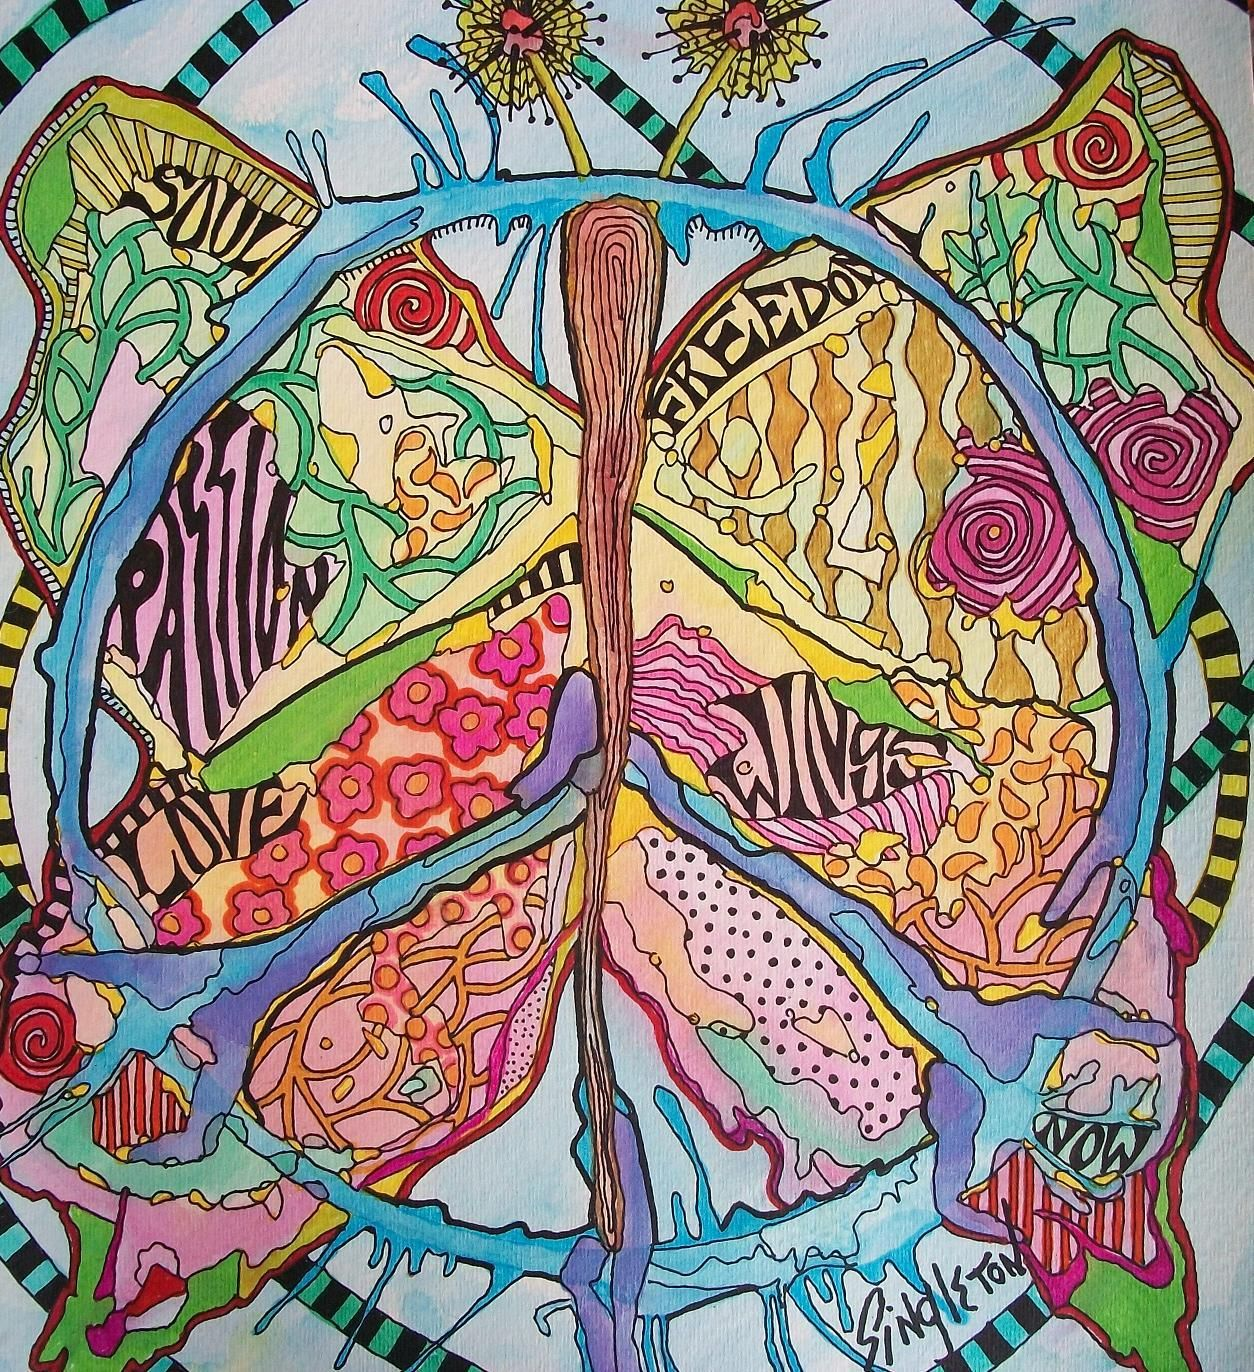 one heart blending with more | Peace Designs | Pinterest | Peace ...